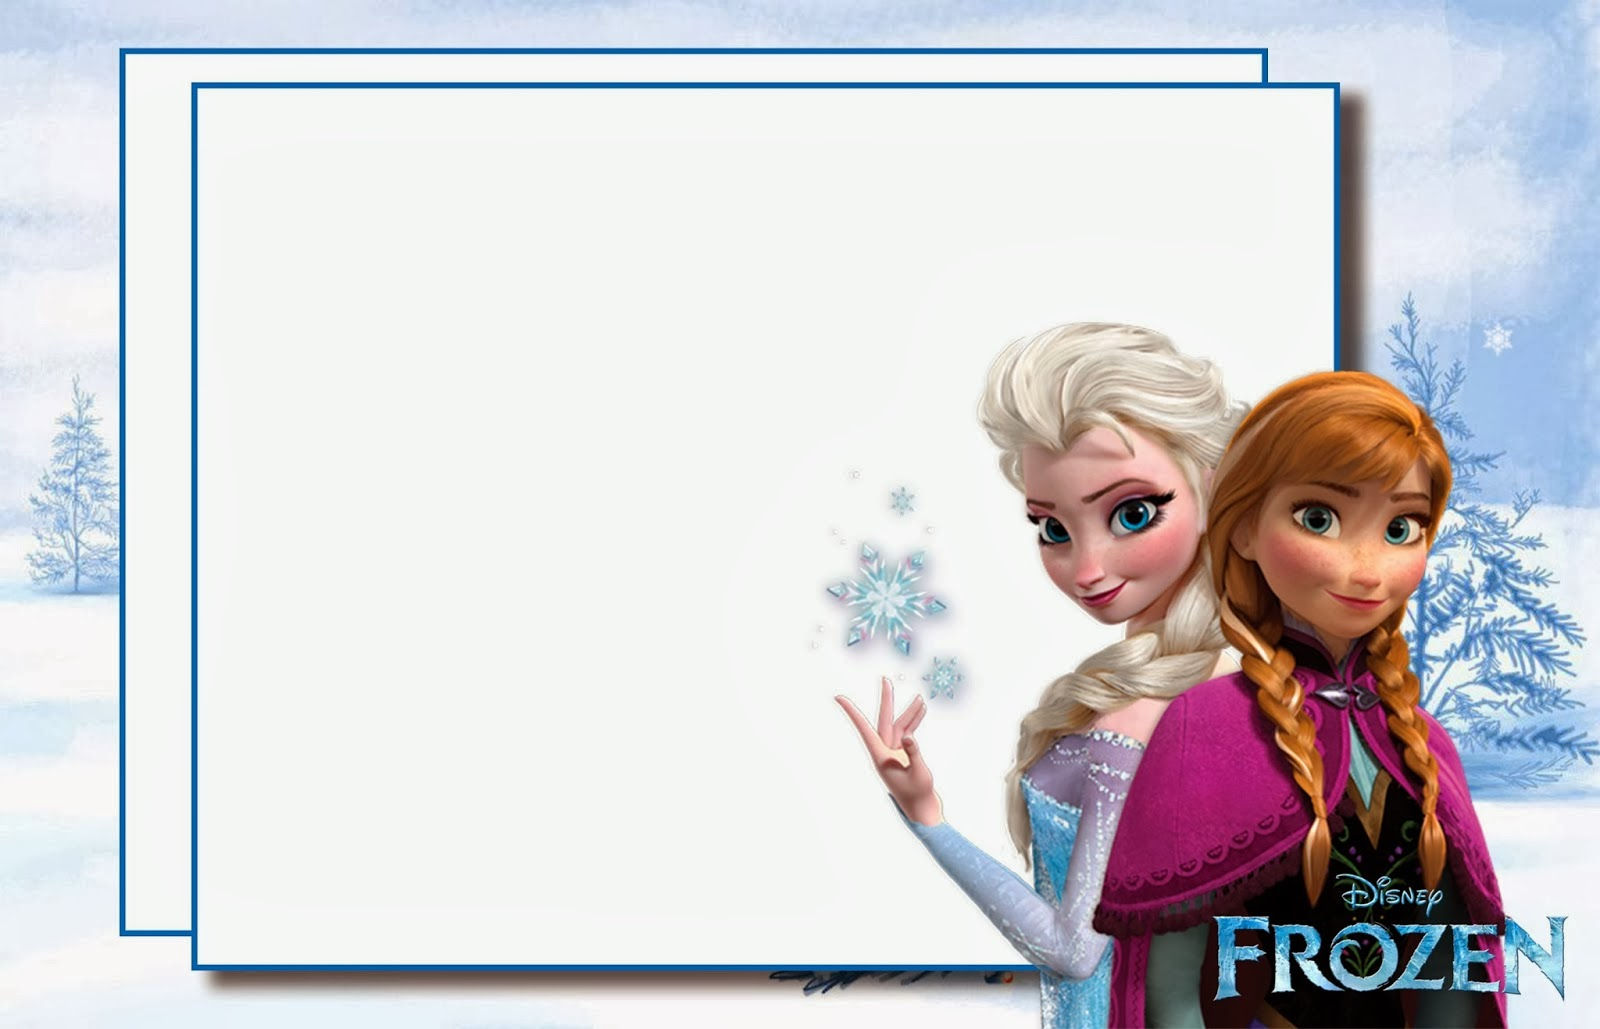 Frozen Party Free Printable Invitations Is It For PARTIES Is - Birthday invitation frozen theme